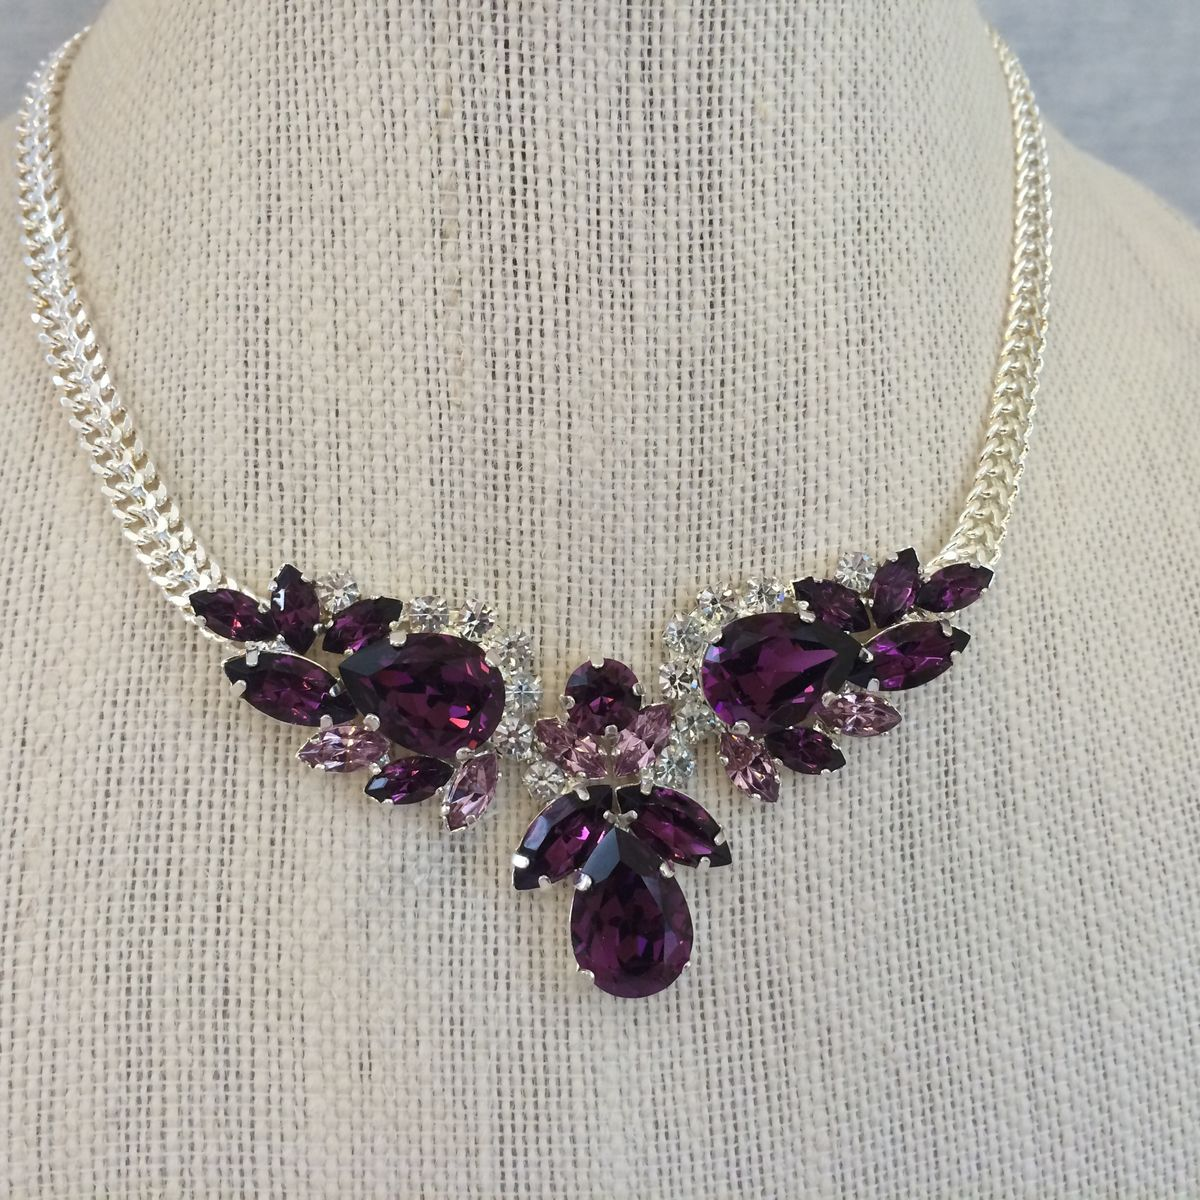 amethyst crystal necklace - photo #39